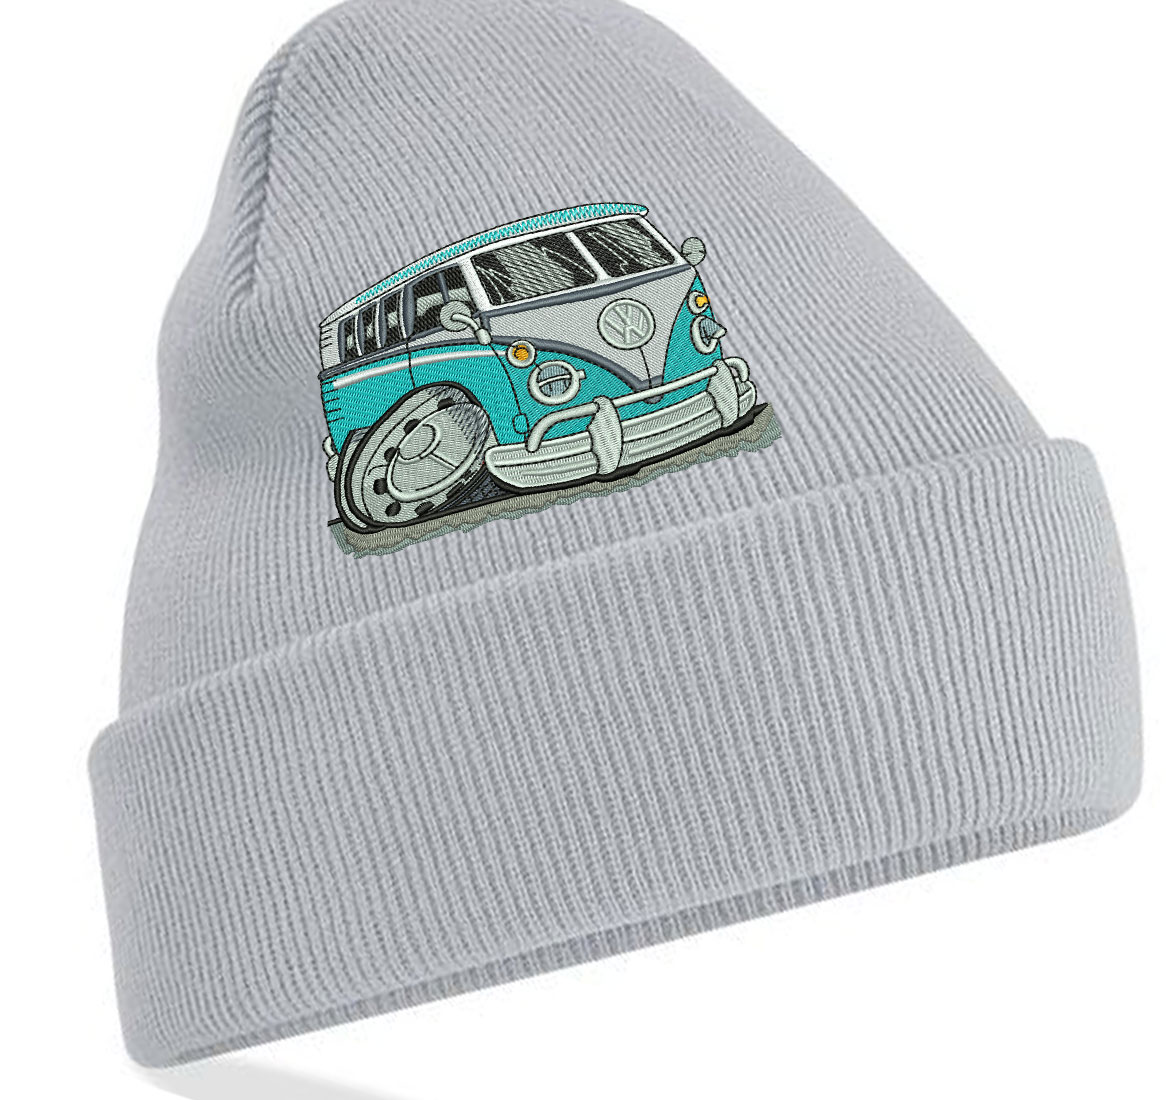 Embroidered Koolart 1526 Camper Adults Unisex Beanie/Hat